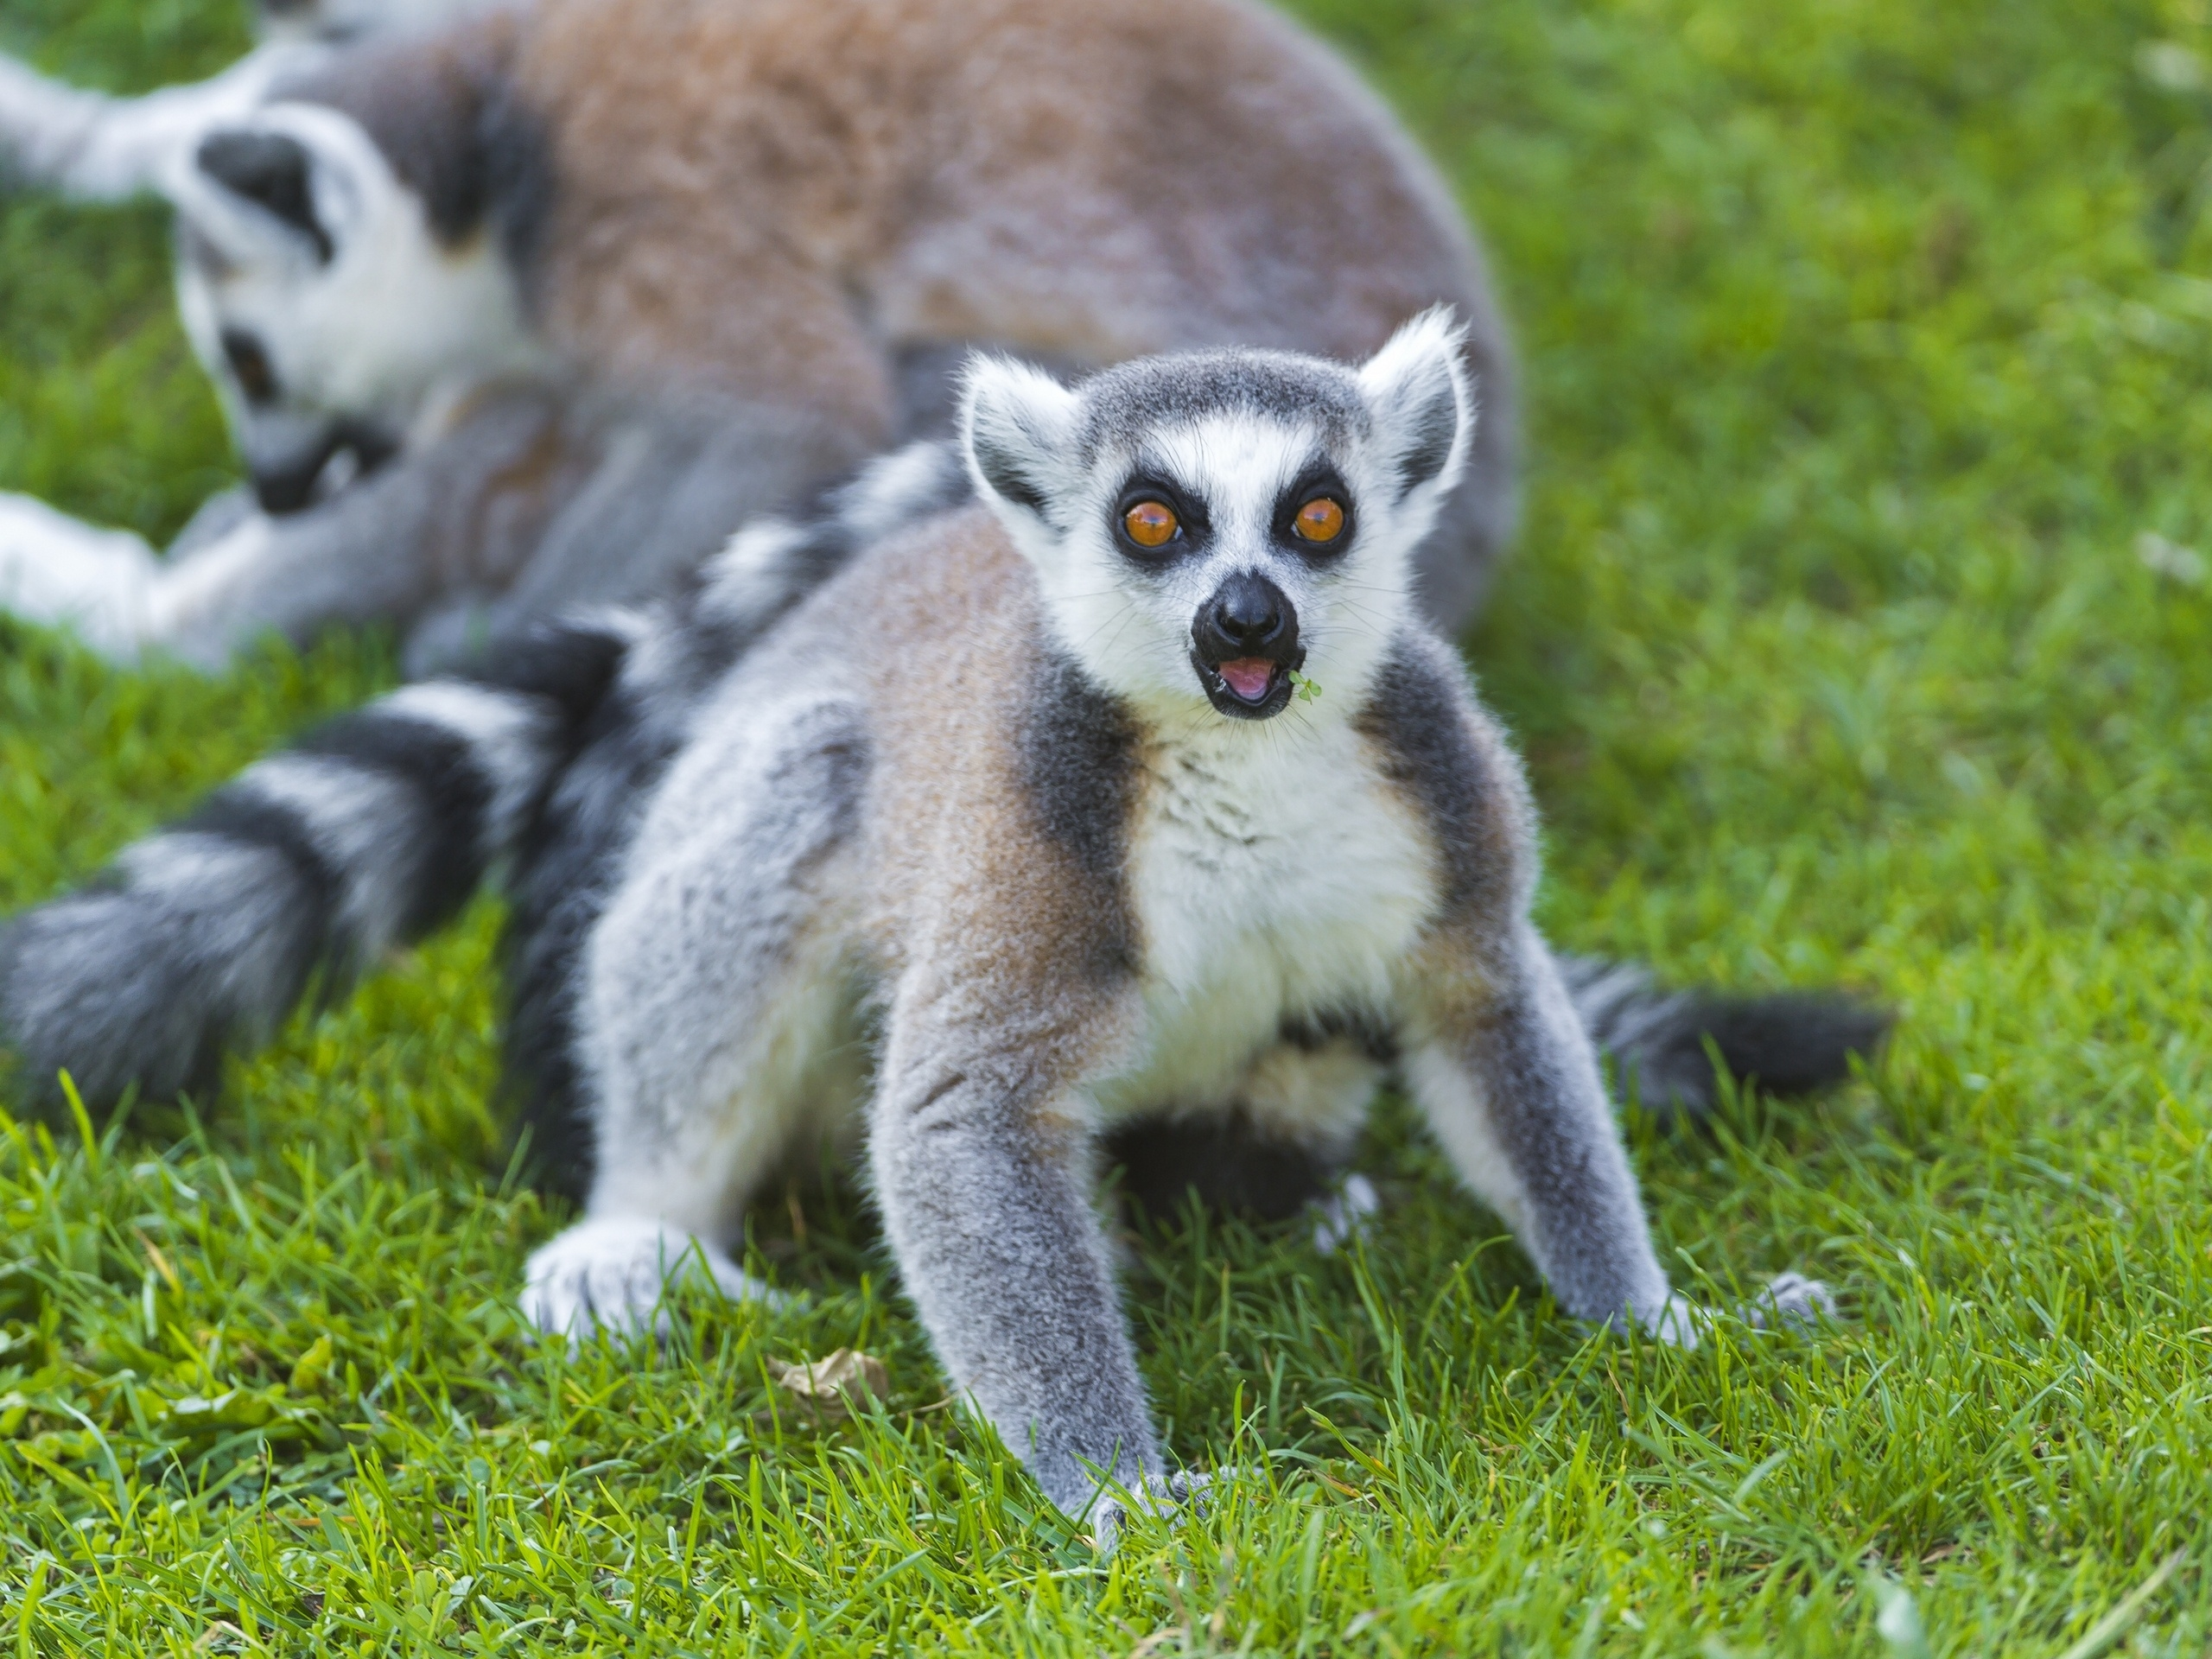 82299 download wallpaper Animals, Lemur, Grass, Scream, Cry, Surprise, Astonishment screensavers and pictures for free